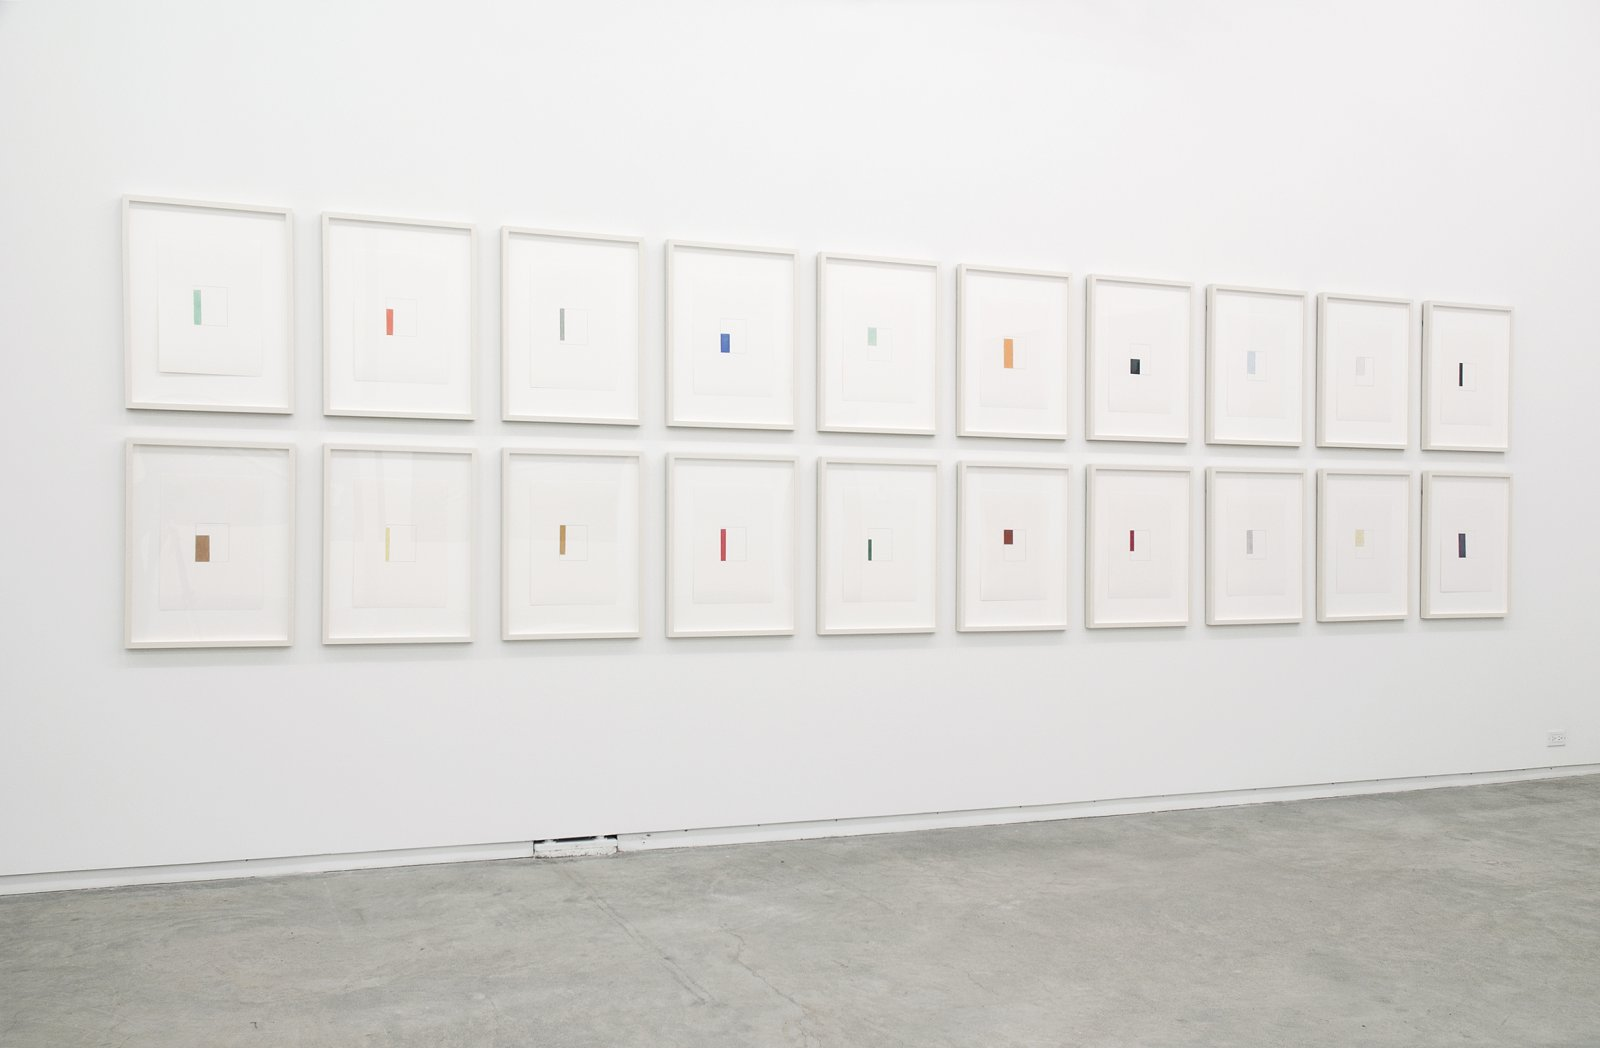 Ian Wallace, Abstract Drawings (Valencia, March 27–29 2004) 1–XX, 2004, 20 coloured pencil on paper drawings, each 17 x 12 in. (42 x 31 cm) by Ian Wallace